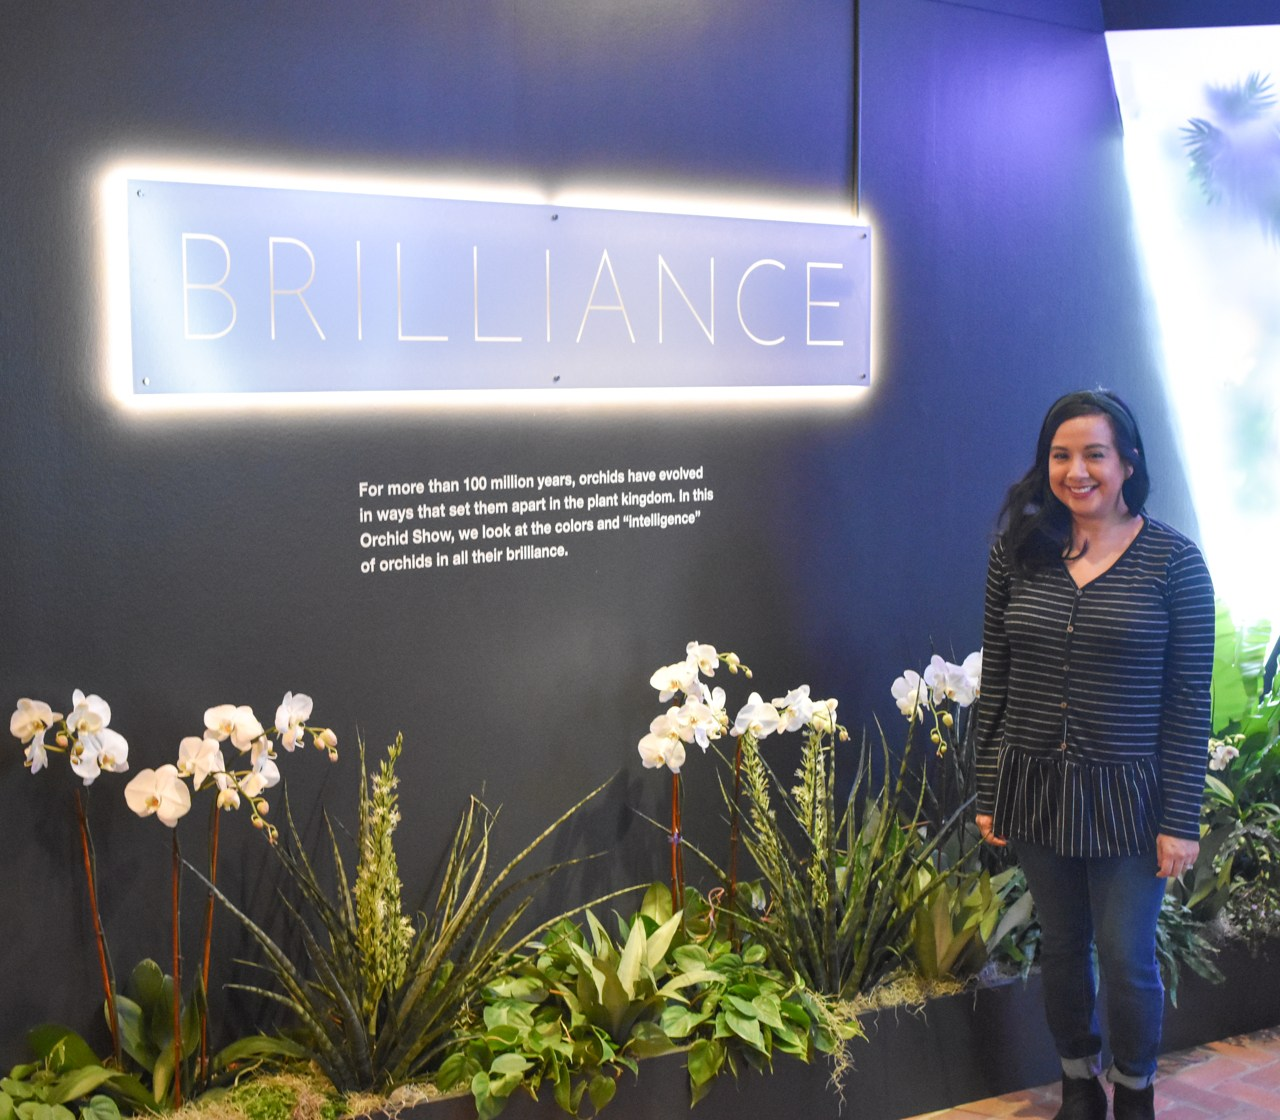 Brilliance: The Orchid Show 2020 at Chicago Botanic Garden